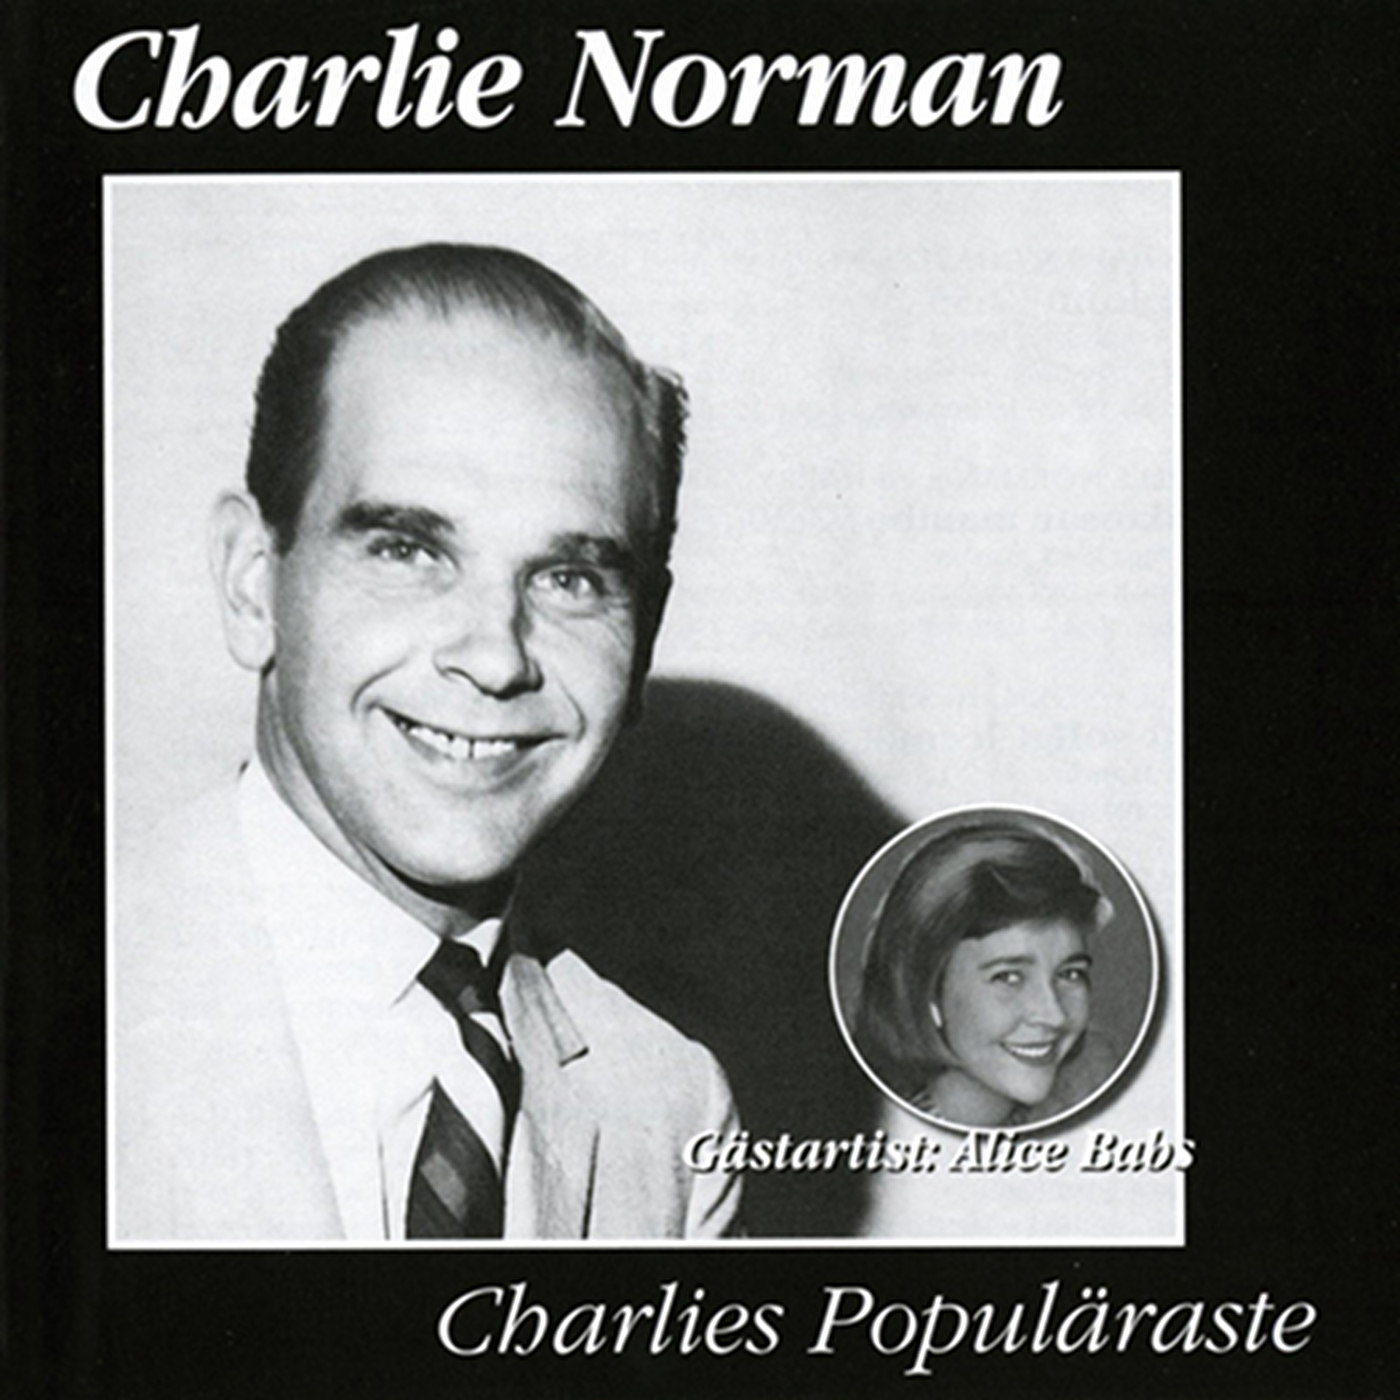 Charles Norman Quintet - Mecka Flat Boogie / Chattanoogie Shoe Shine Boy